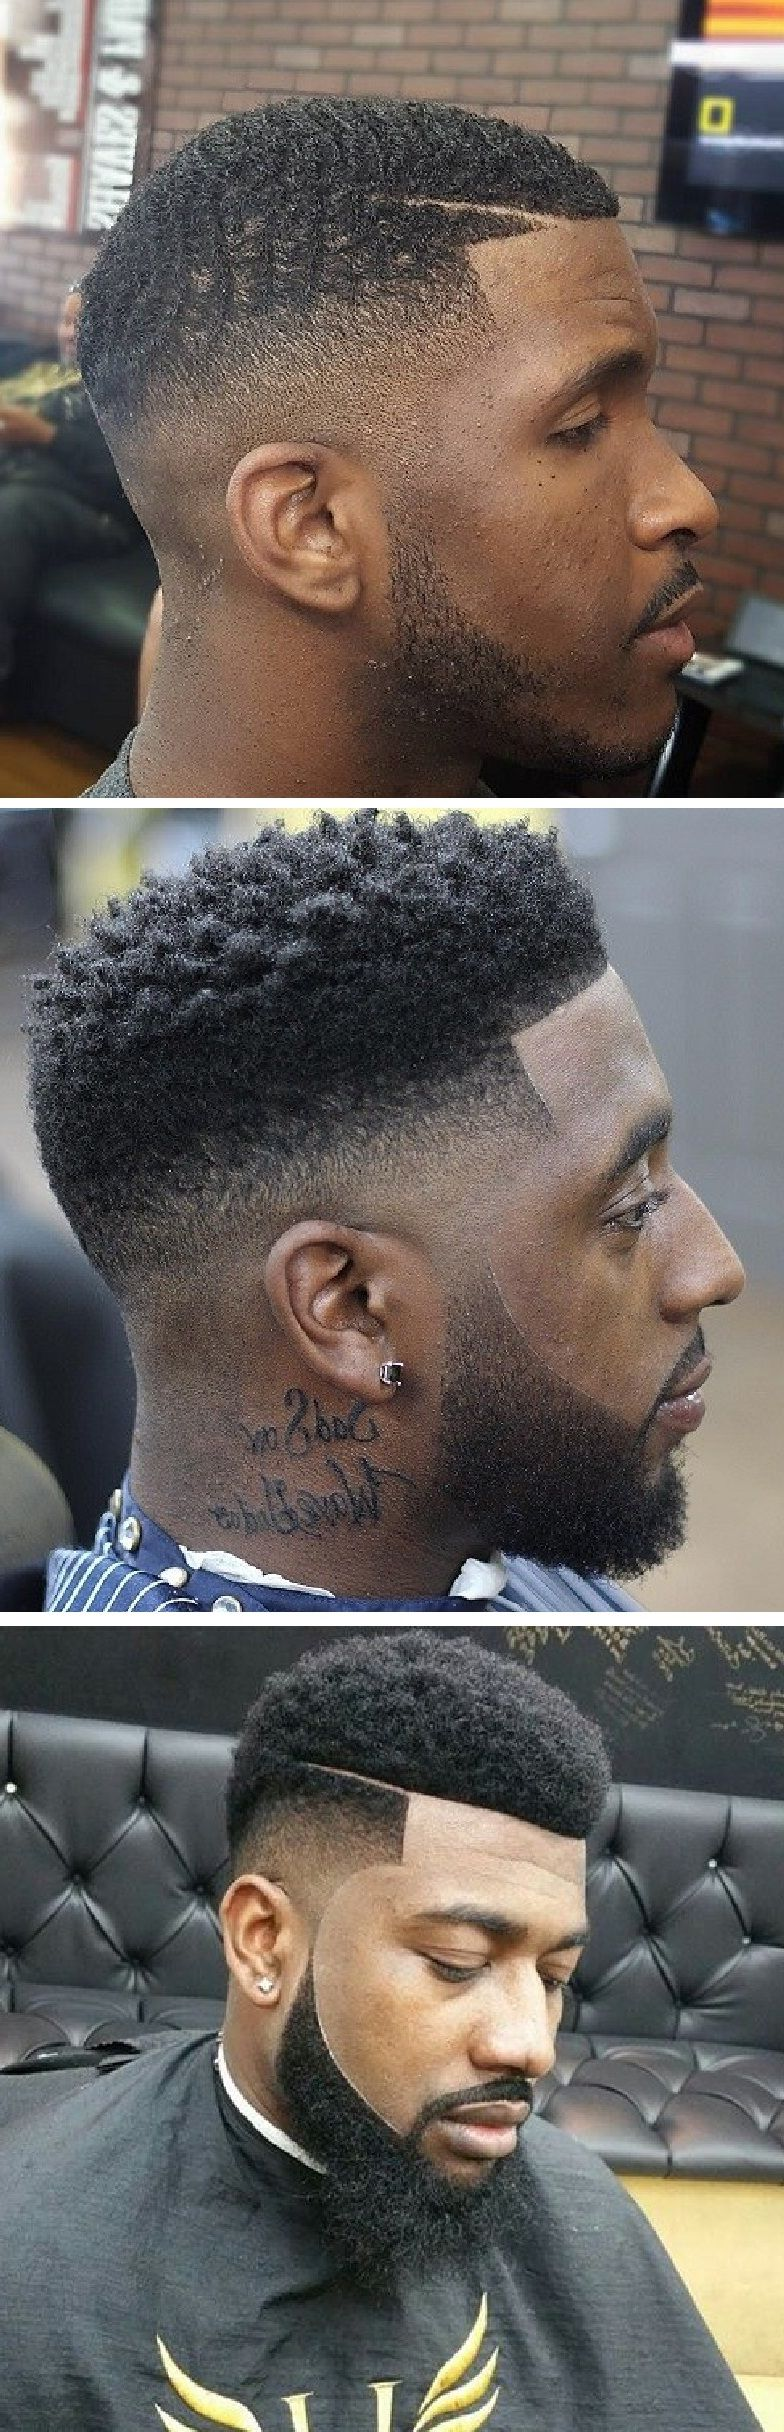 Pin on Latest Hairstyles and Haircuts